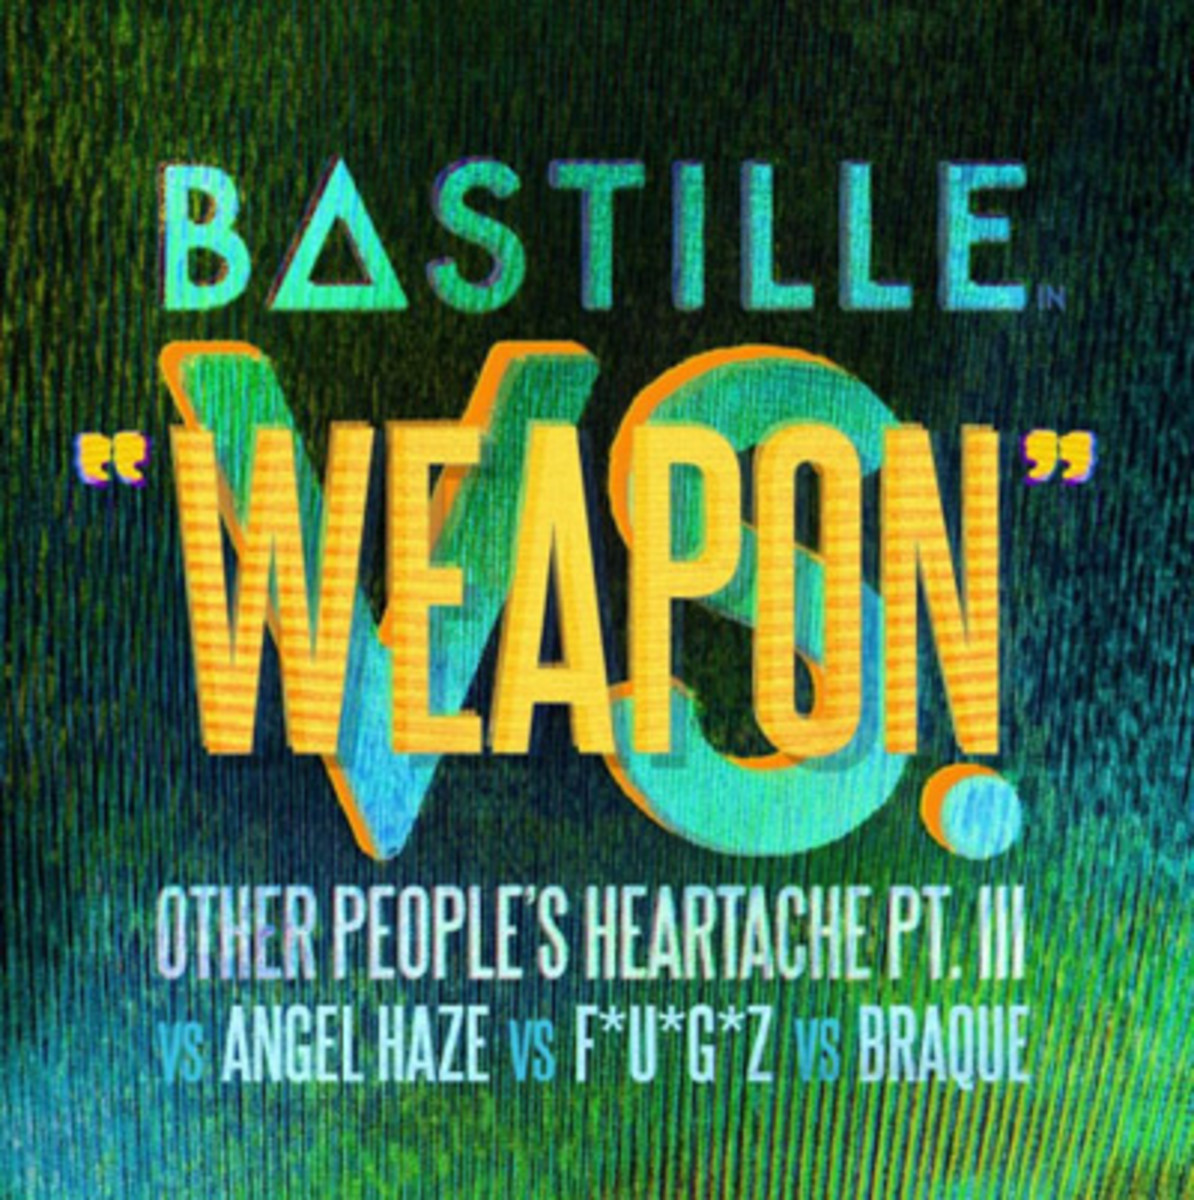 bastille-weapon.jpg